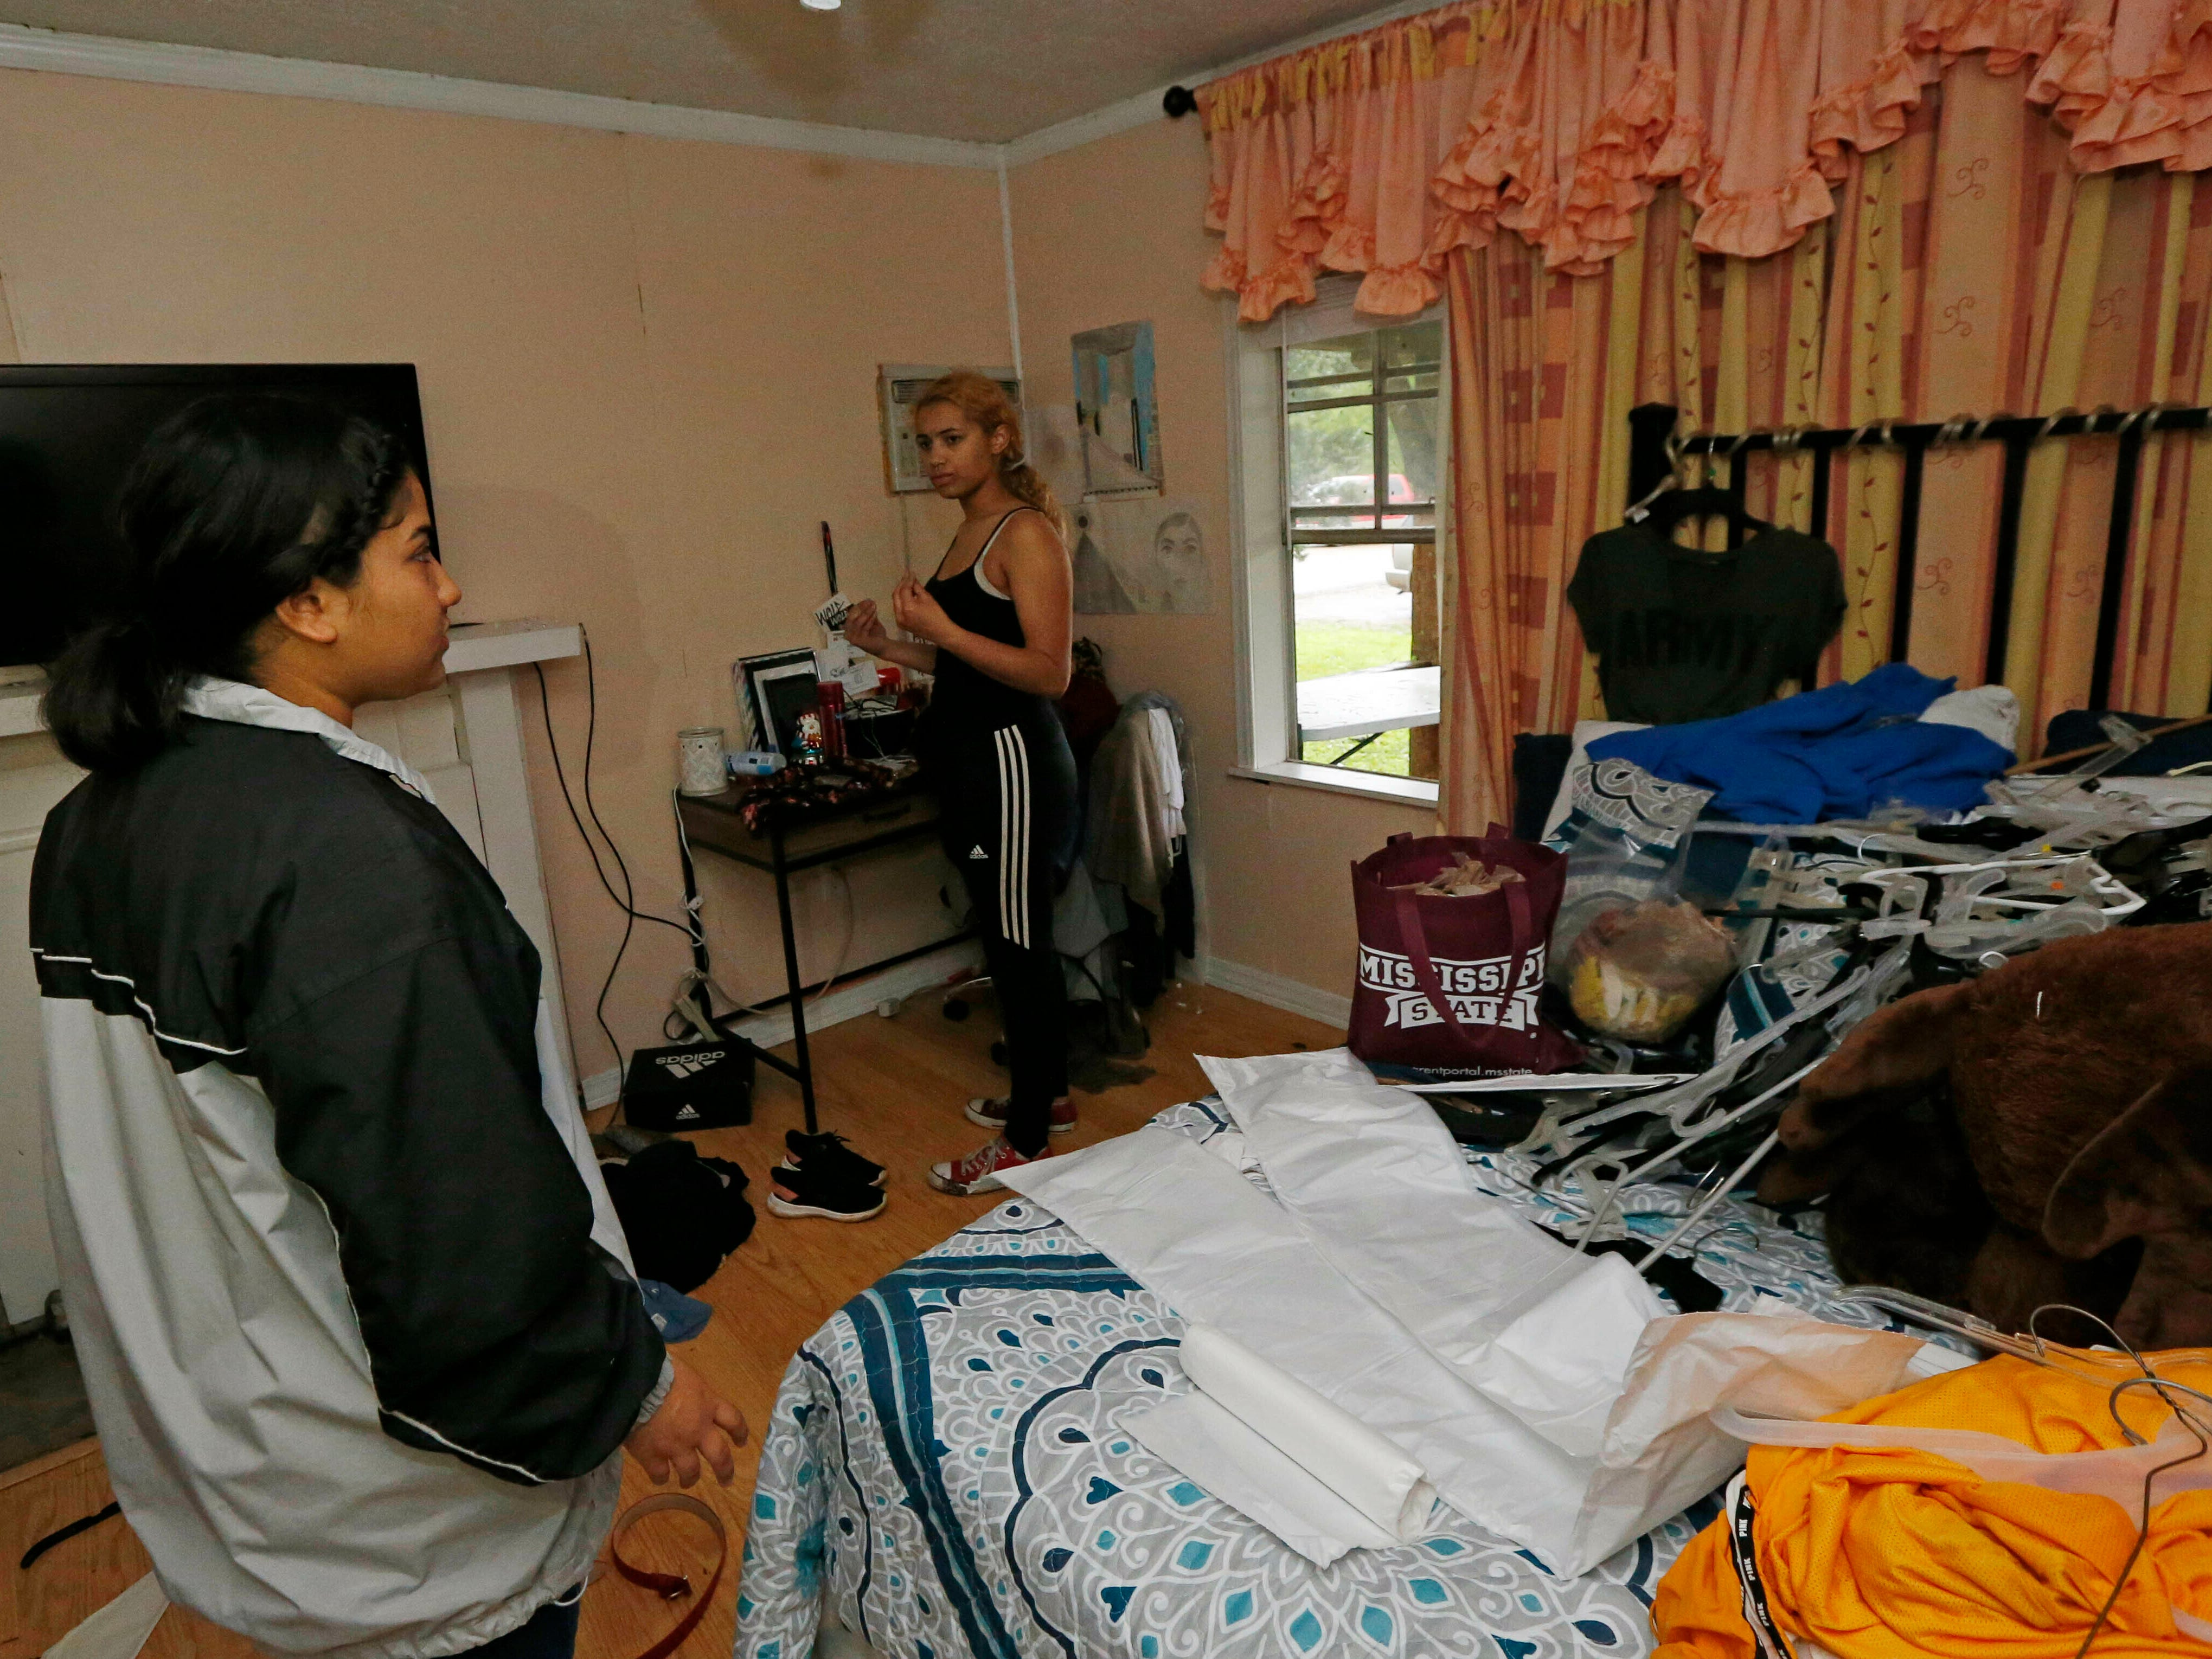 Jacqualynn Qualls, left, gathers her clothes from her undamaged room in her Learned, Miss., home, Thursday, April 18, 2019, after a oak tree demolished her brother's room, bathroom and much of the living quarters. Strong storms again roared across the South on Thursday, topping trees and leaving more than 100,000 people without power across Mississippi, Louisiana and Texas.